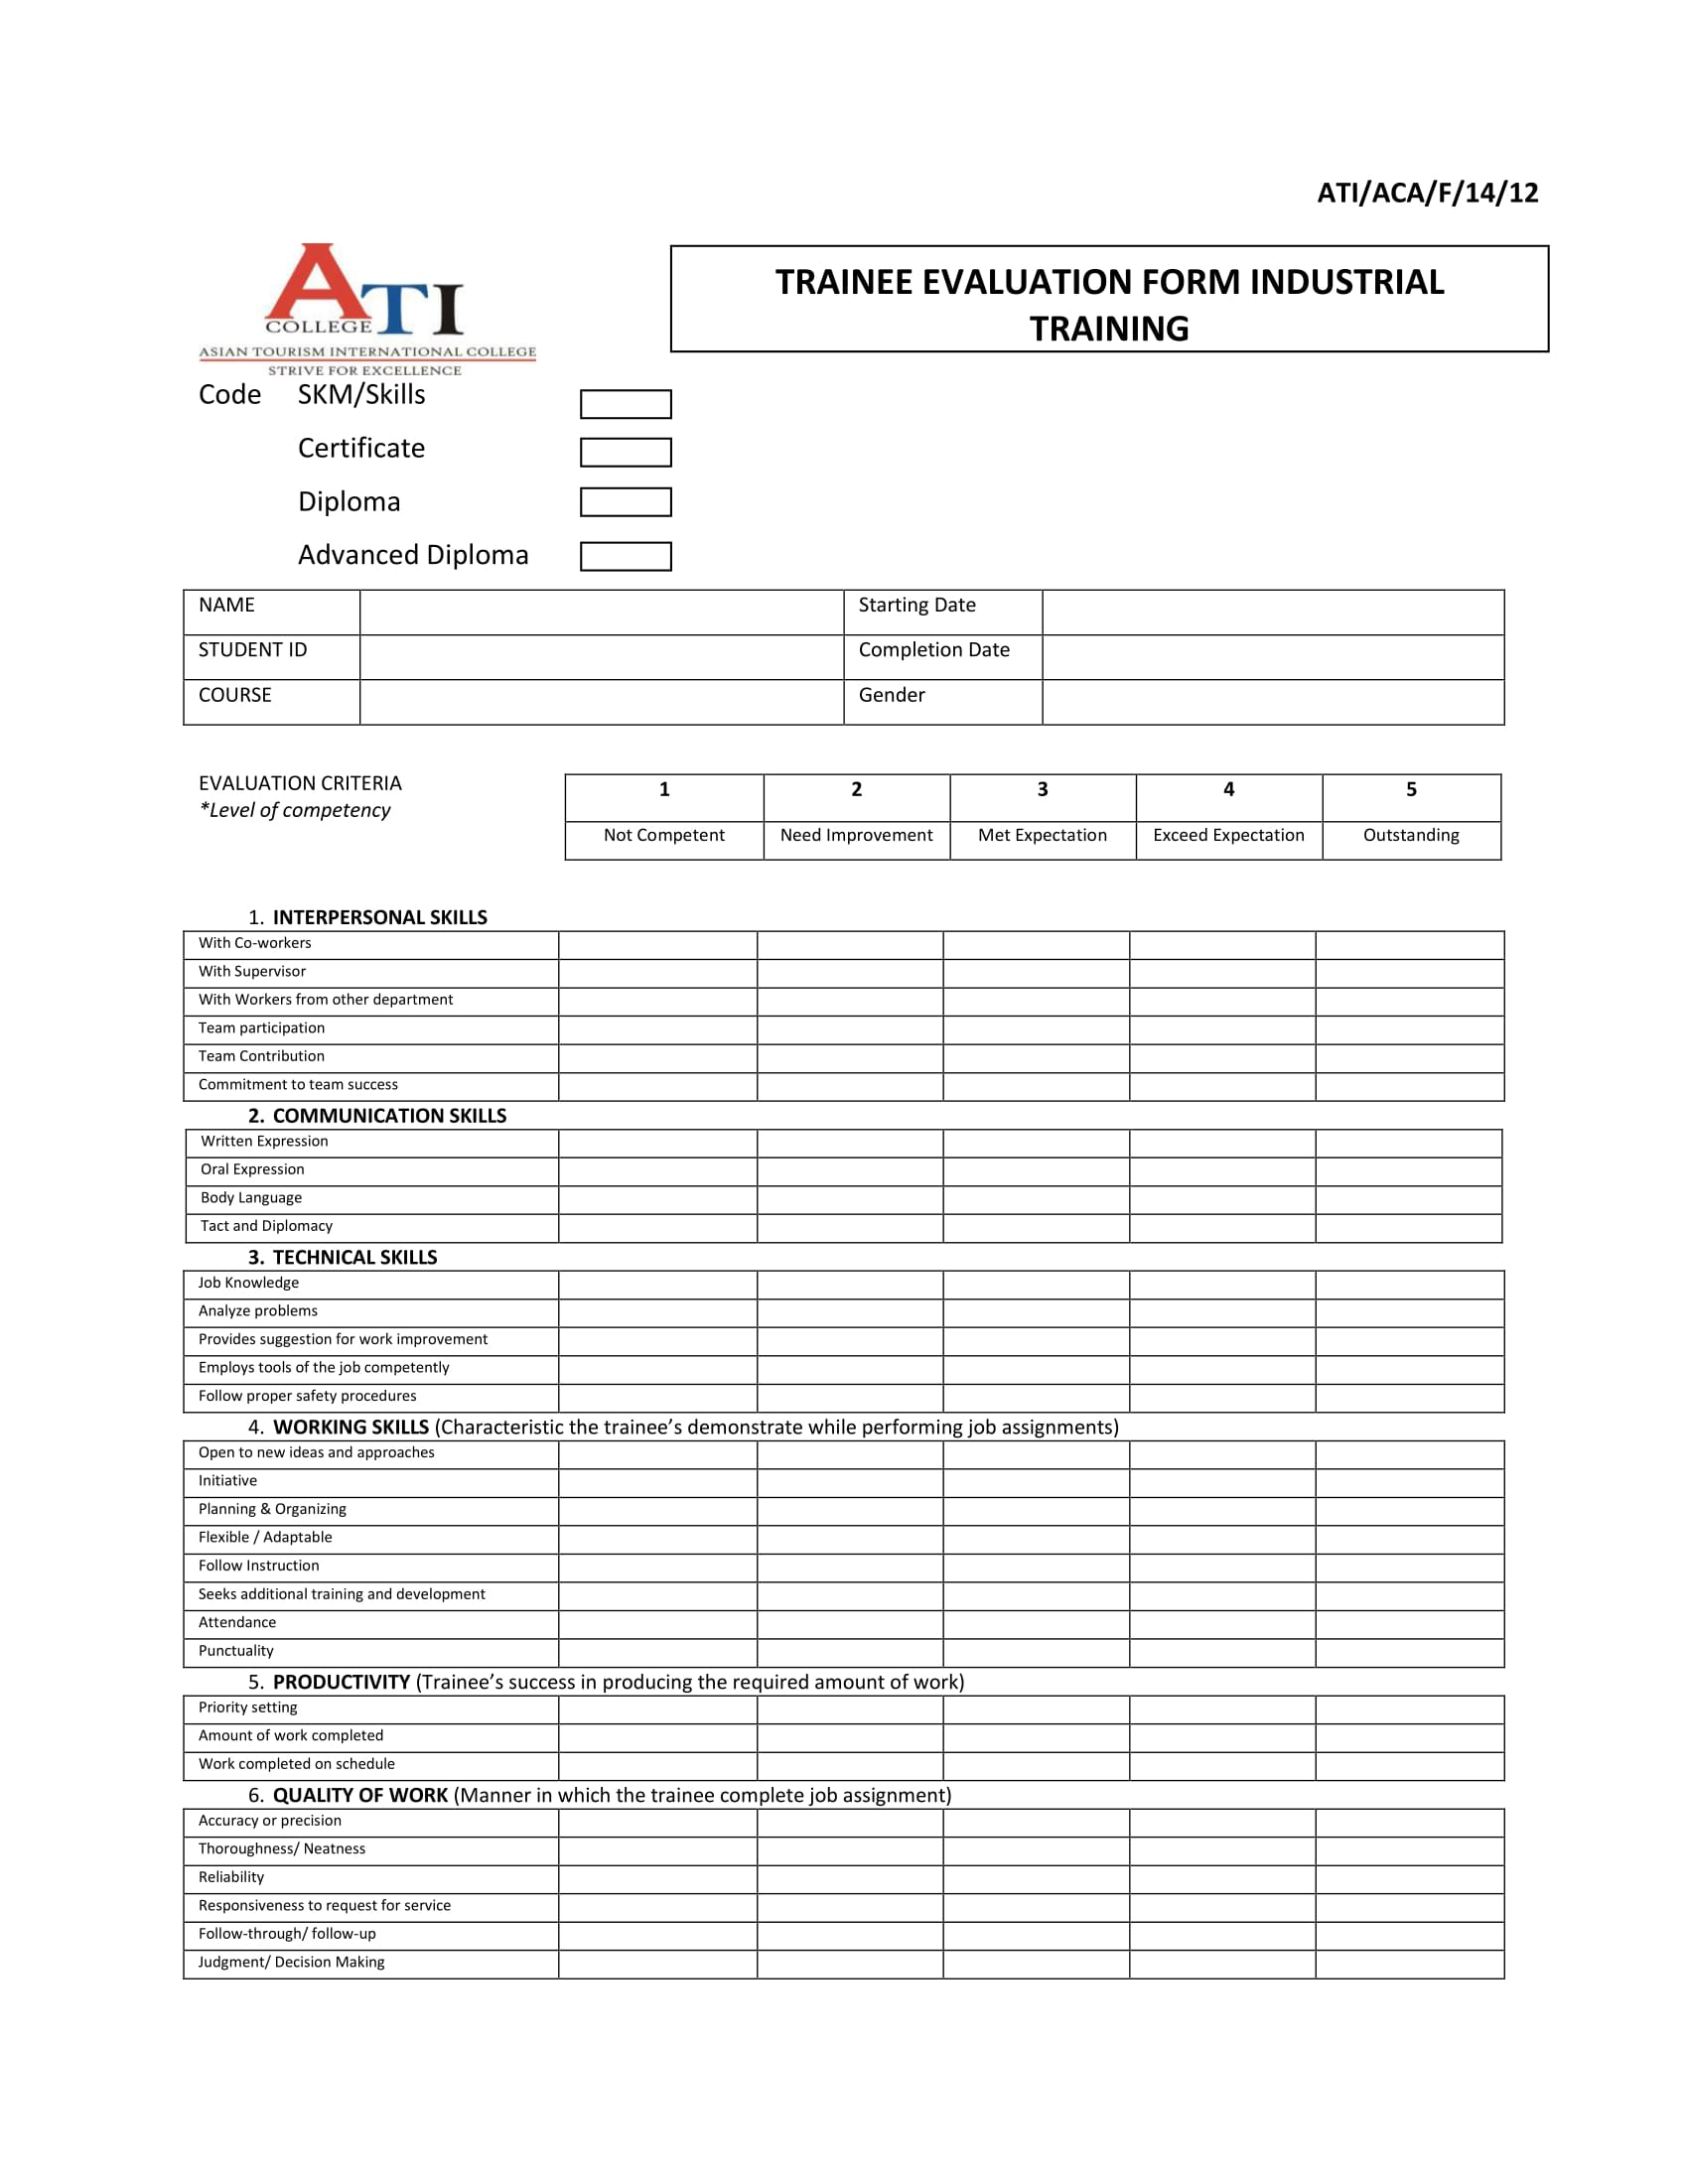 industrial college trainee evaluation form 1